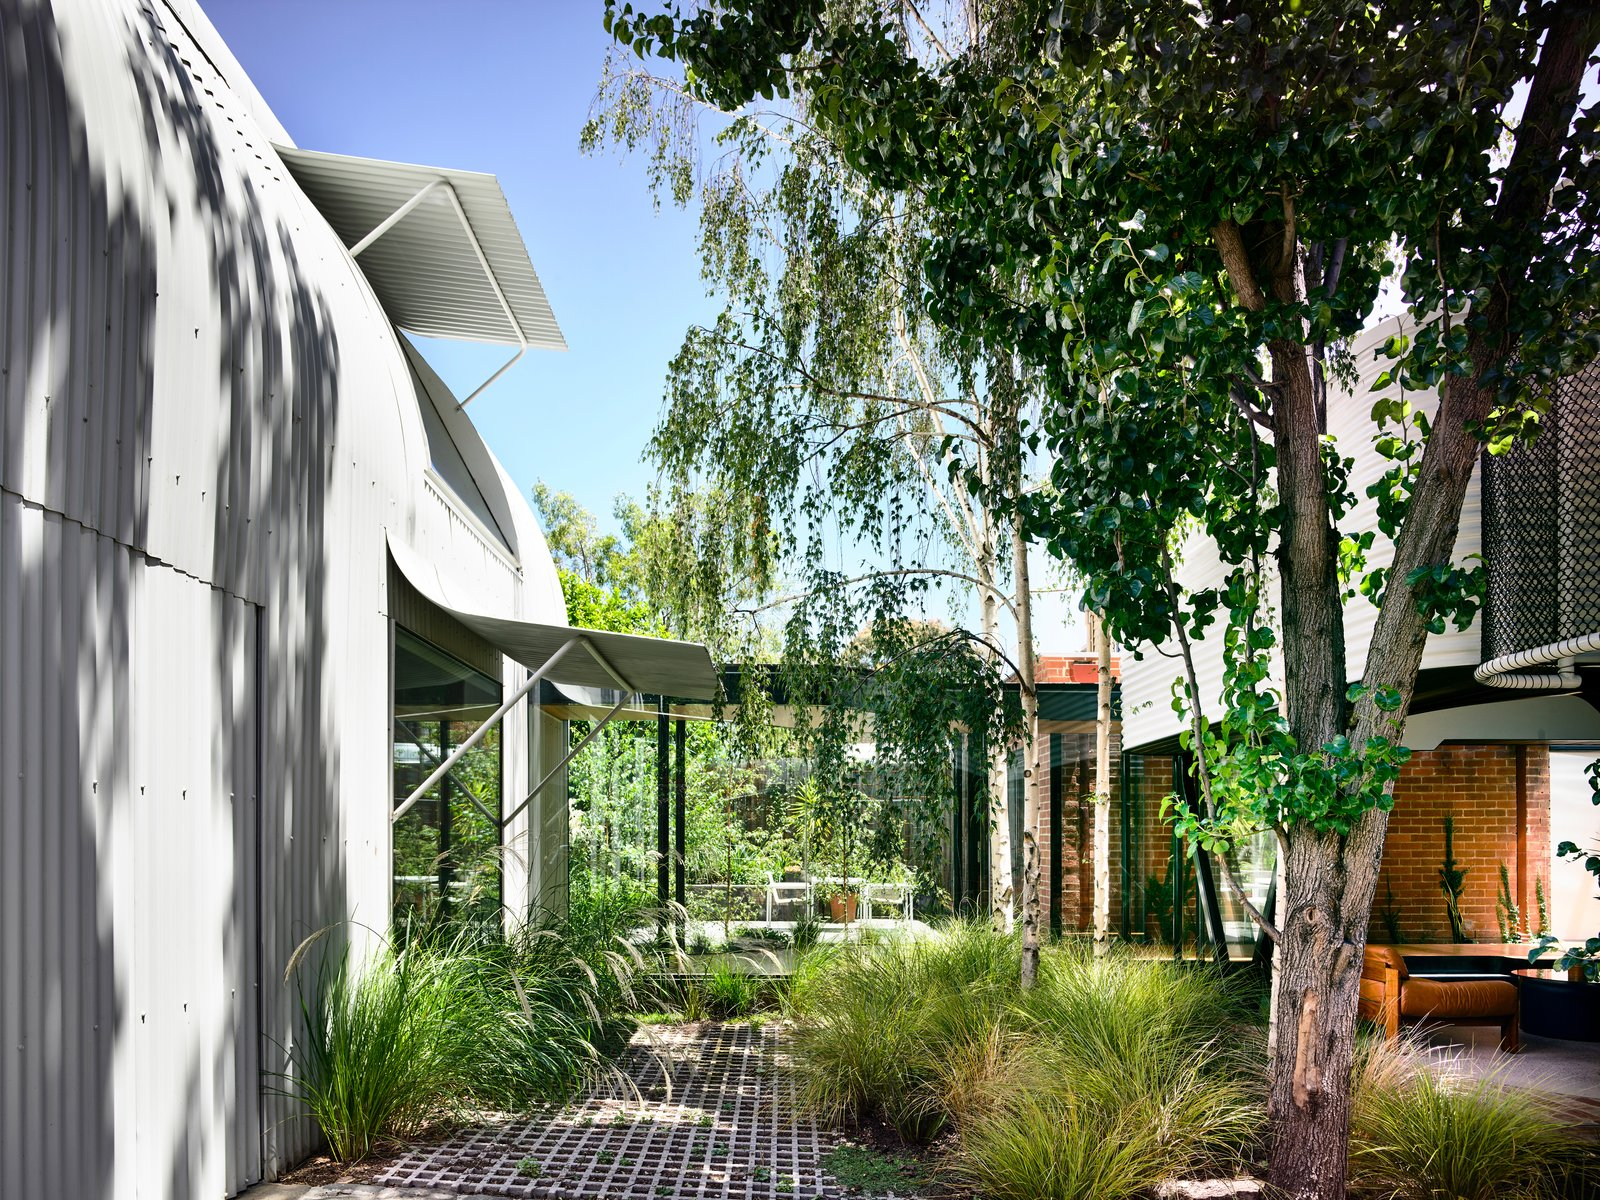 Outdoor, Shrubs, Grass, Trees, and Small Patio, Porch, Deck They unified the main house, rear stable and a new pavilion in the garden with corrugated colorbond steel metal cladding.  Photo 4 of 19 in An Inventive Melbourne Remodel Greets the Street With a New Garden